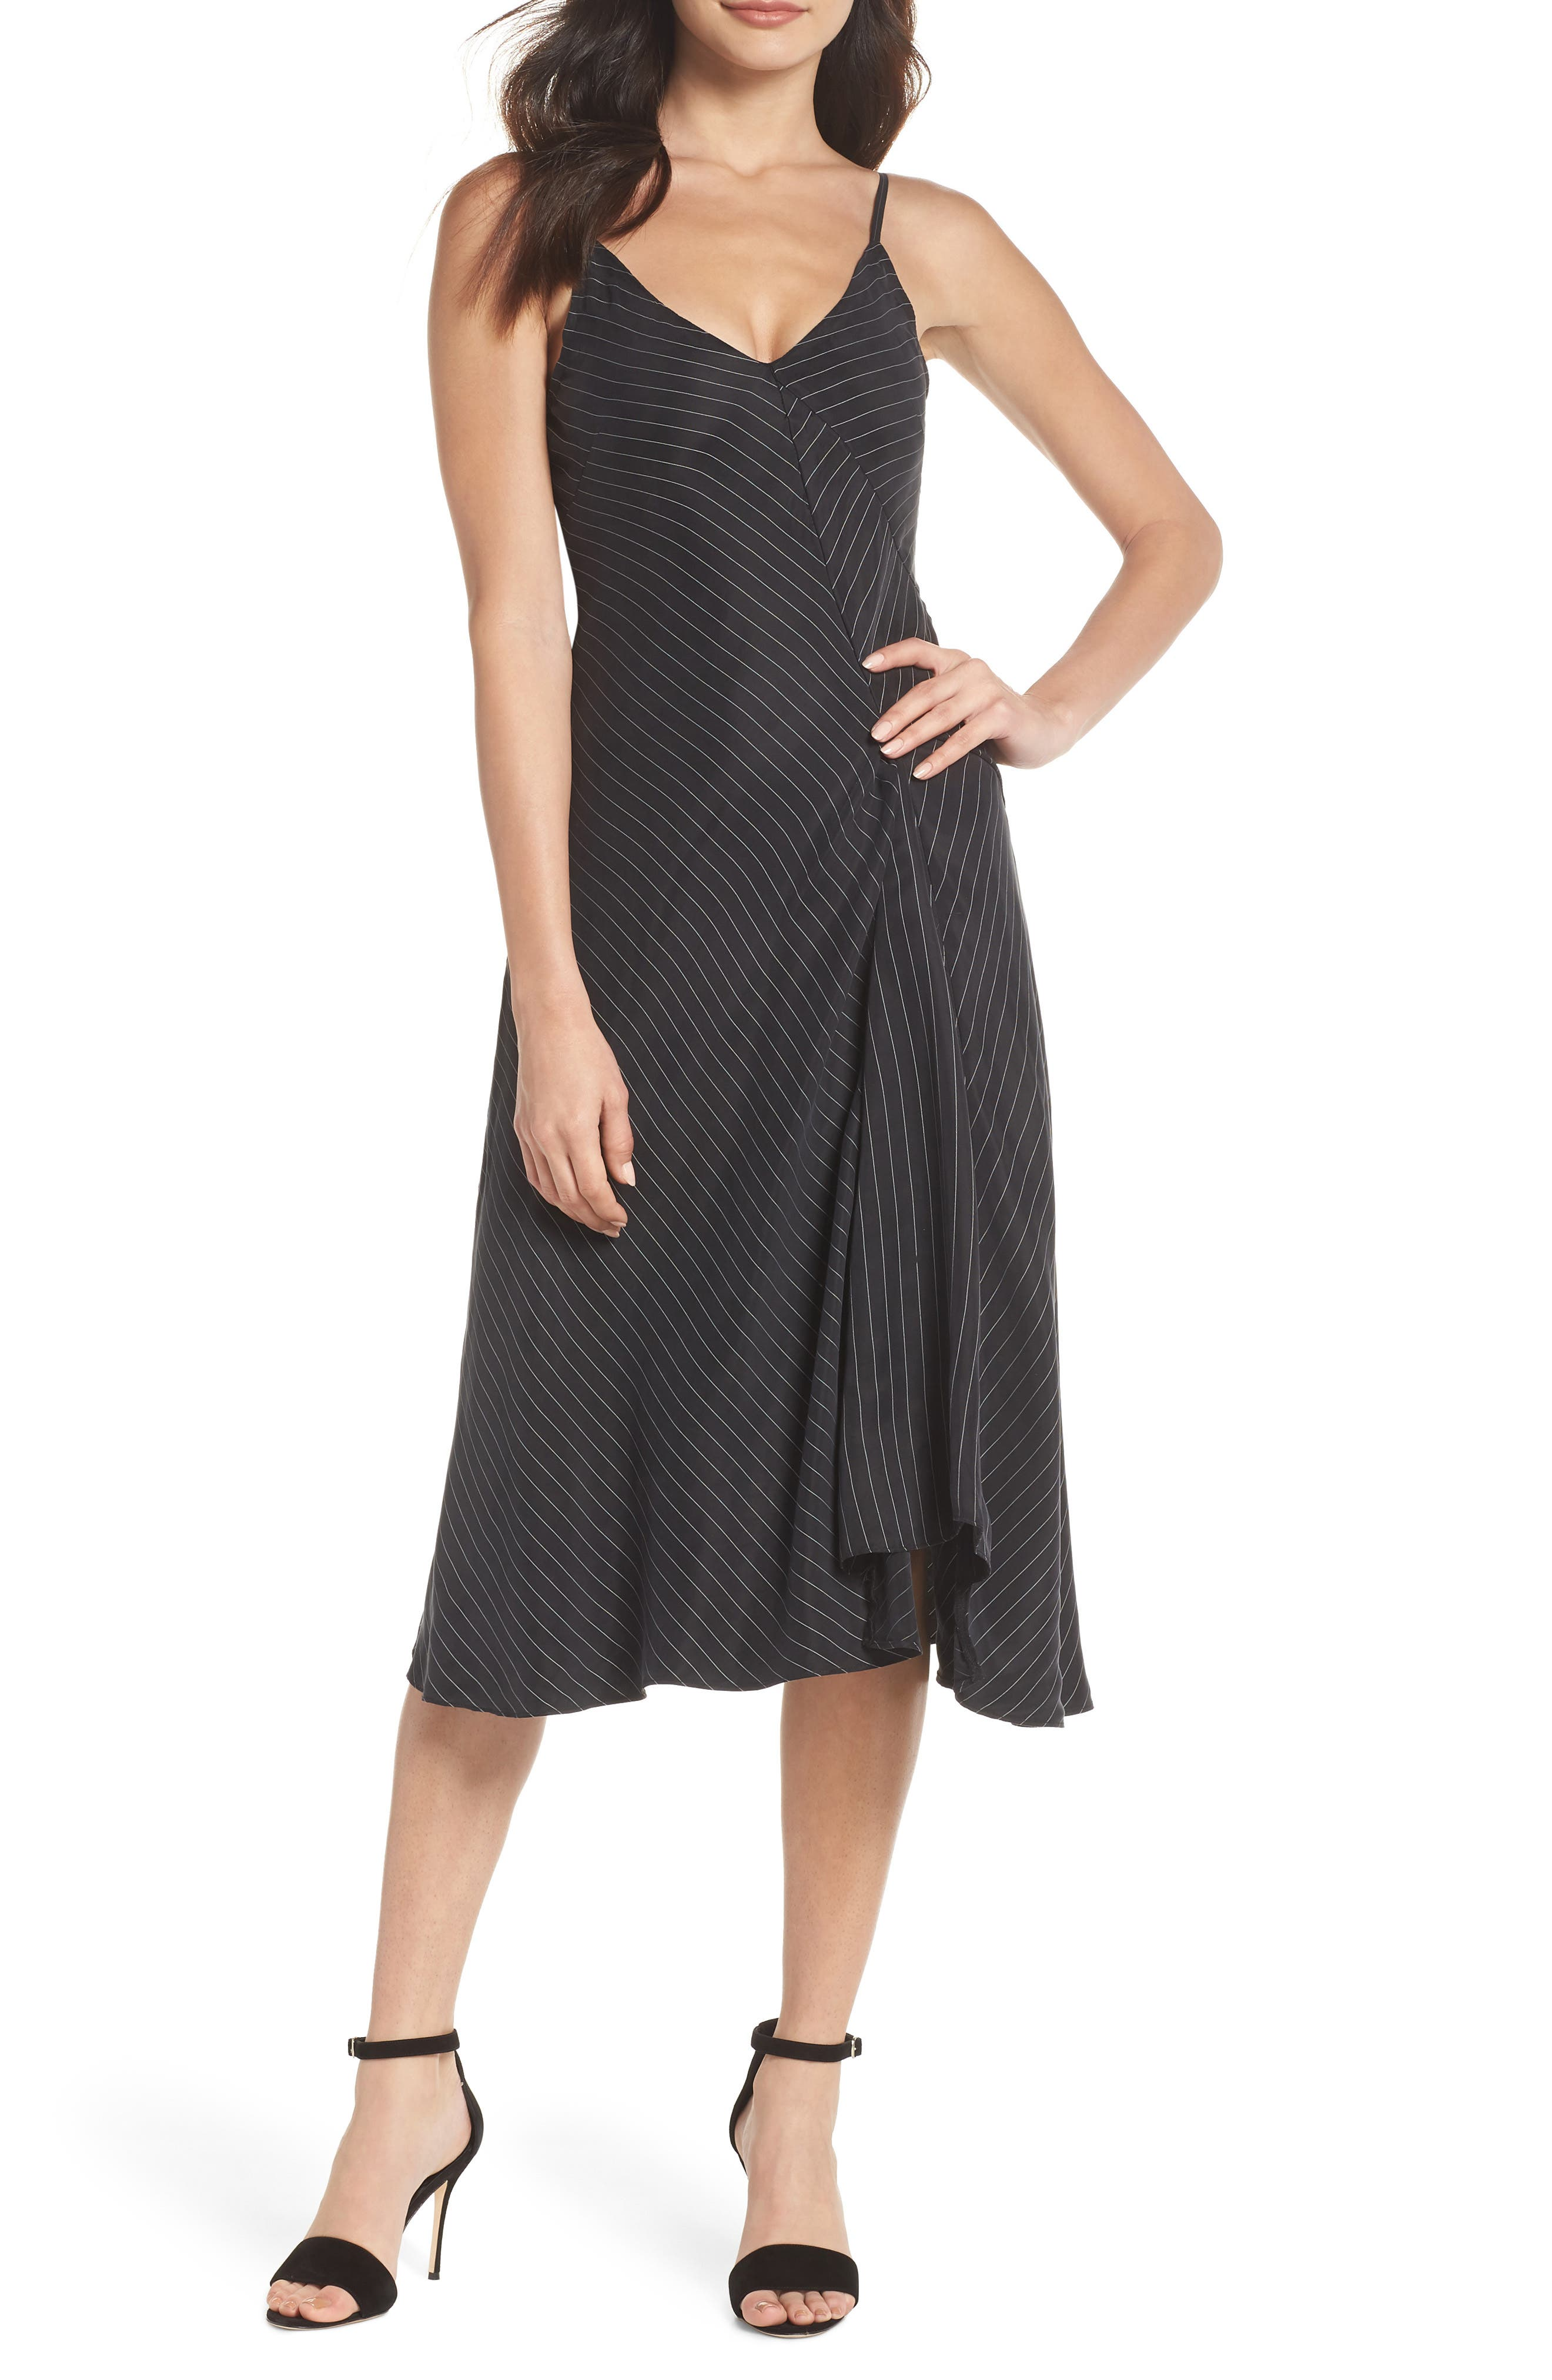 Bay Area Sleeveless Pinstripe Midi Dress,                         Main,                         color, 001